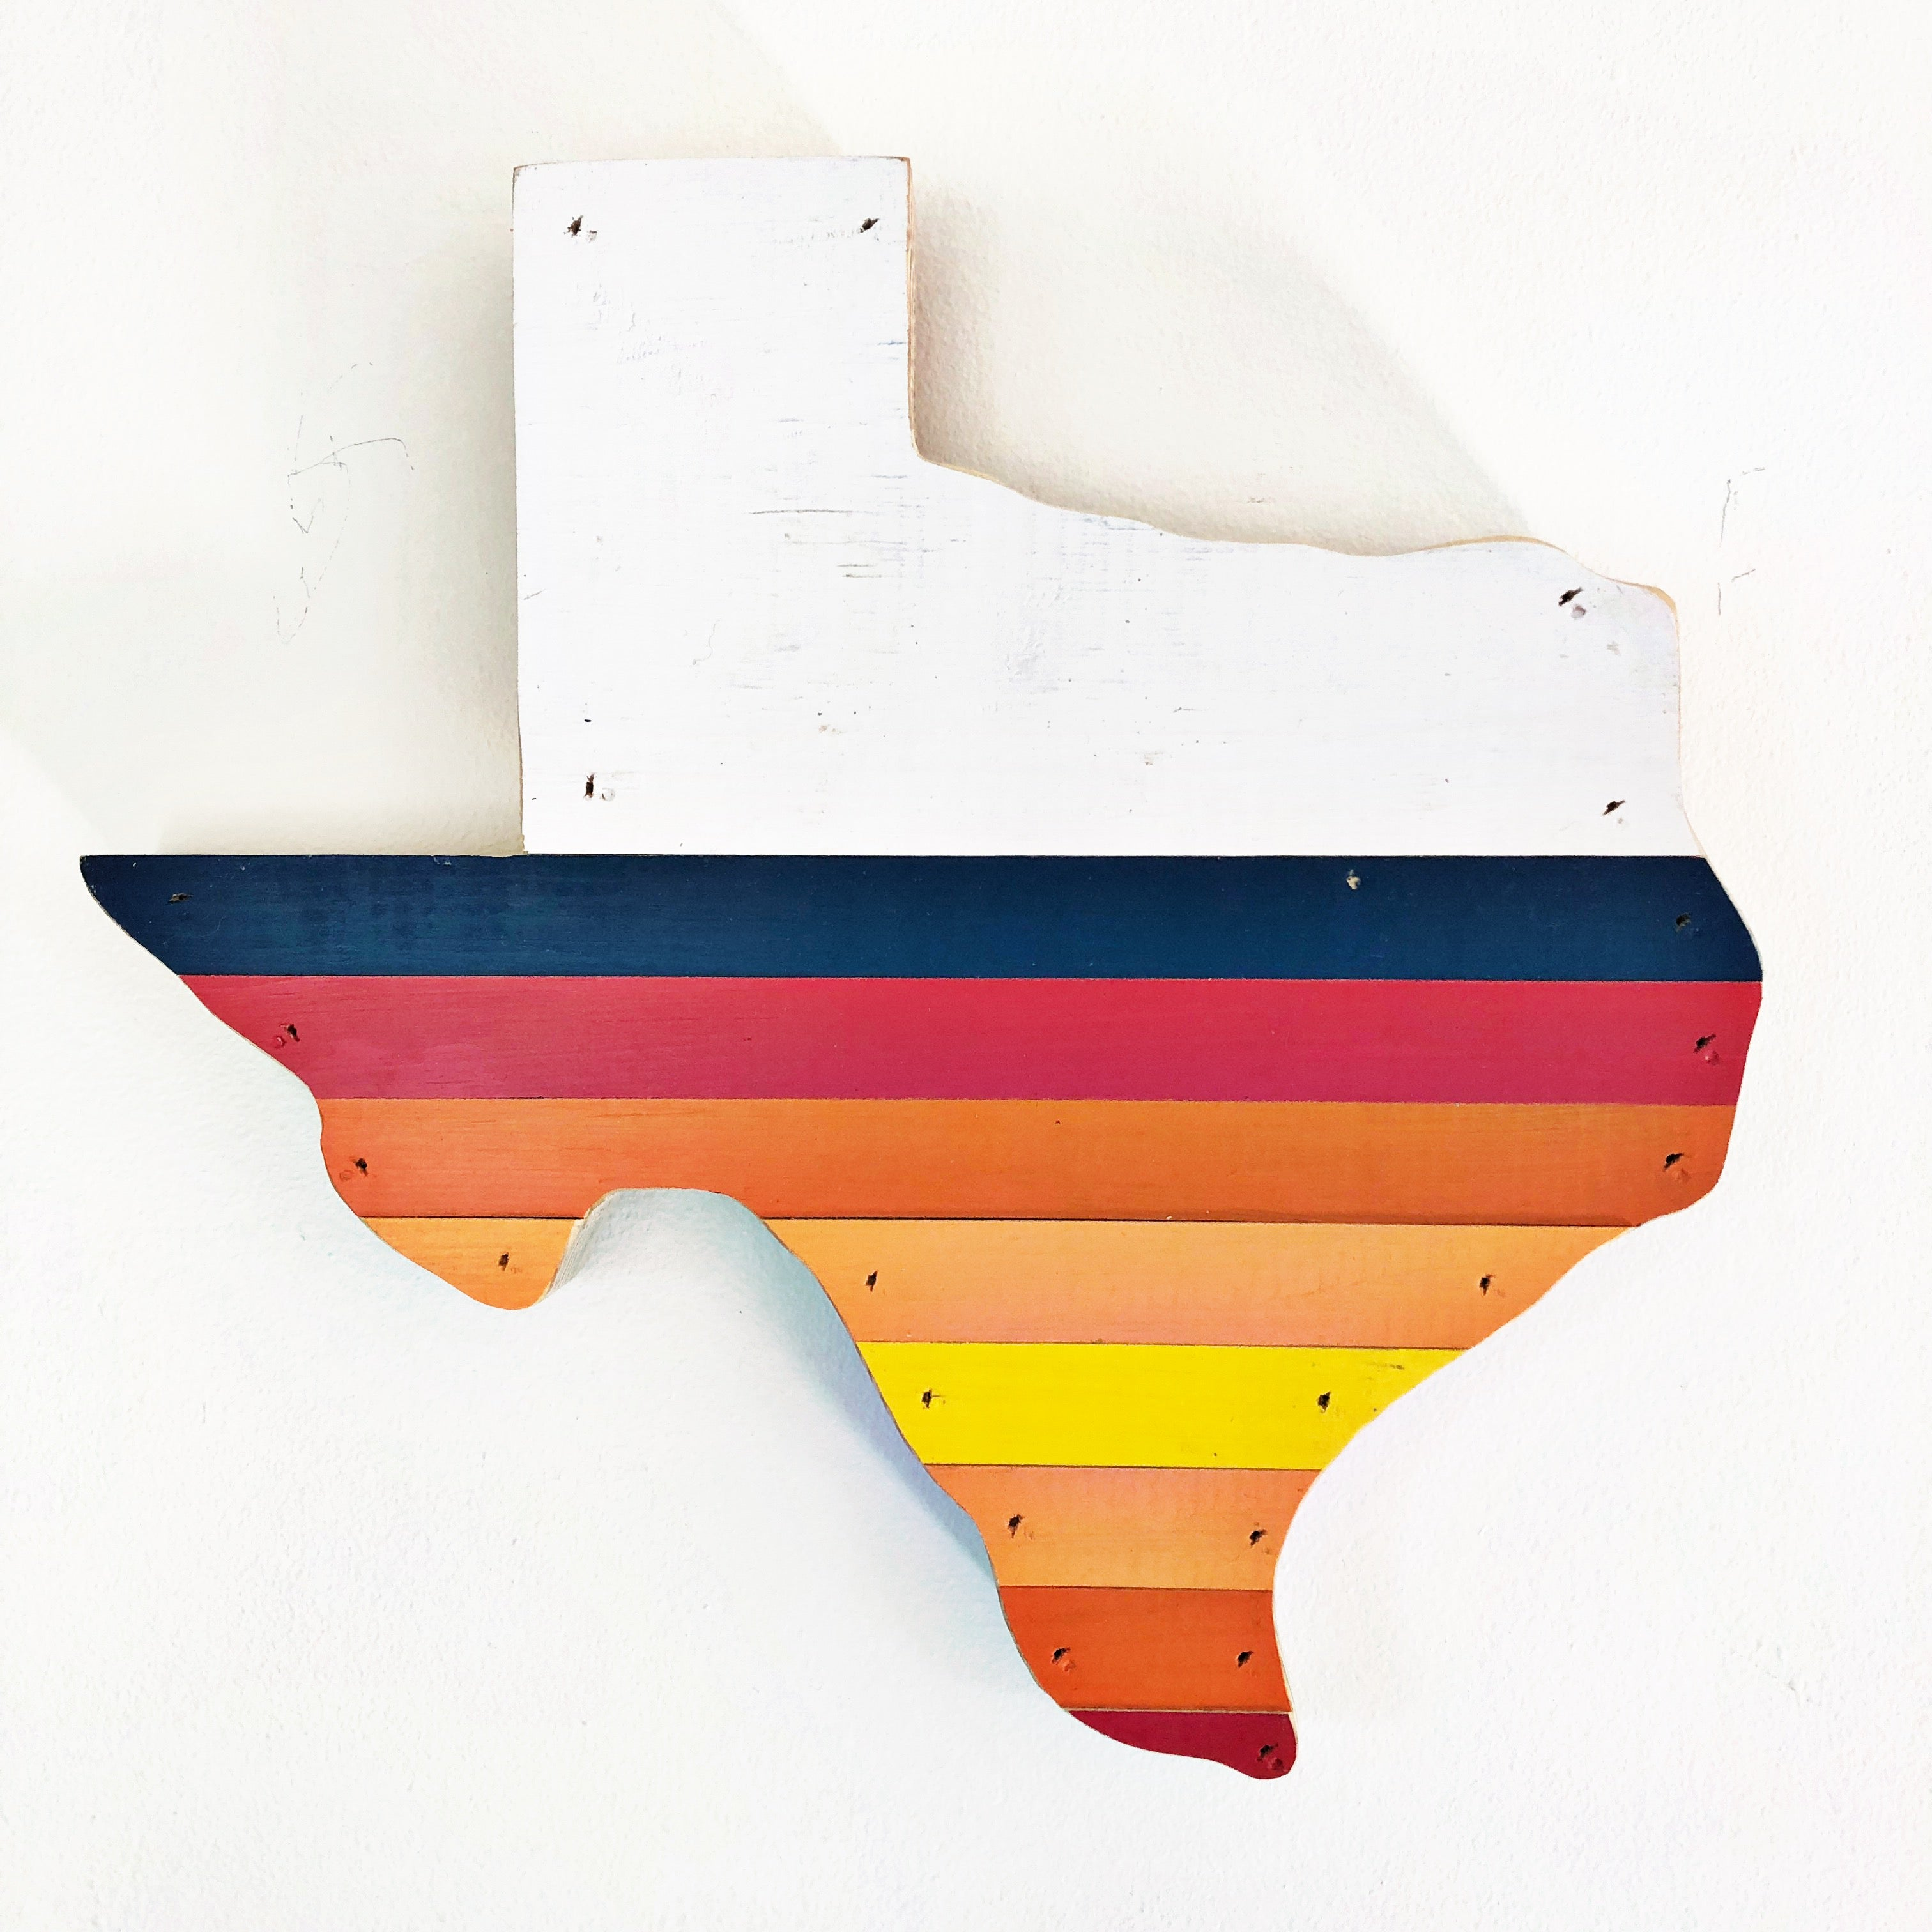 "'76 PLAINS TEXAS - 'STROS - 12"" (One-of-a-Kind)"